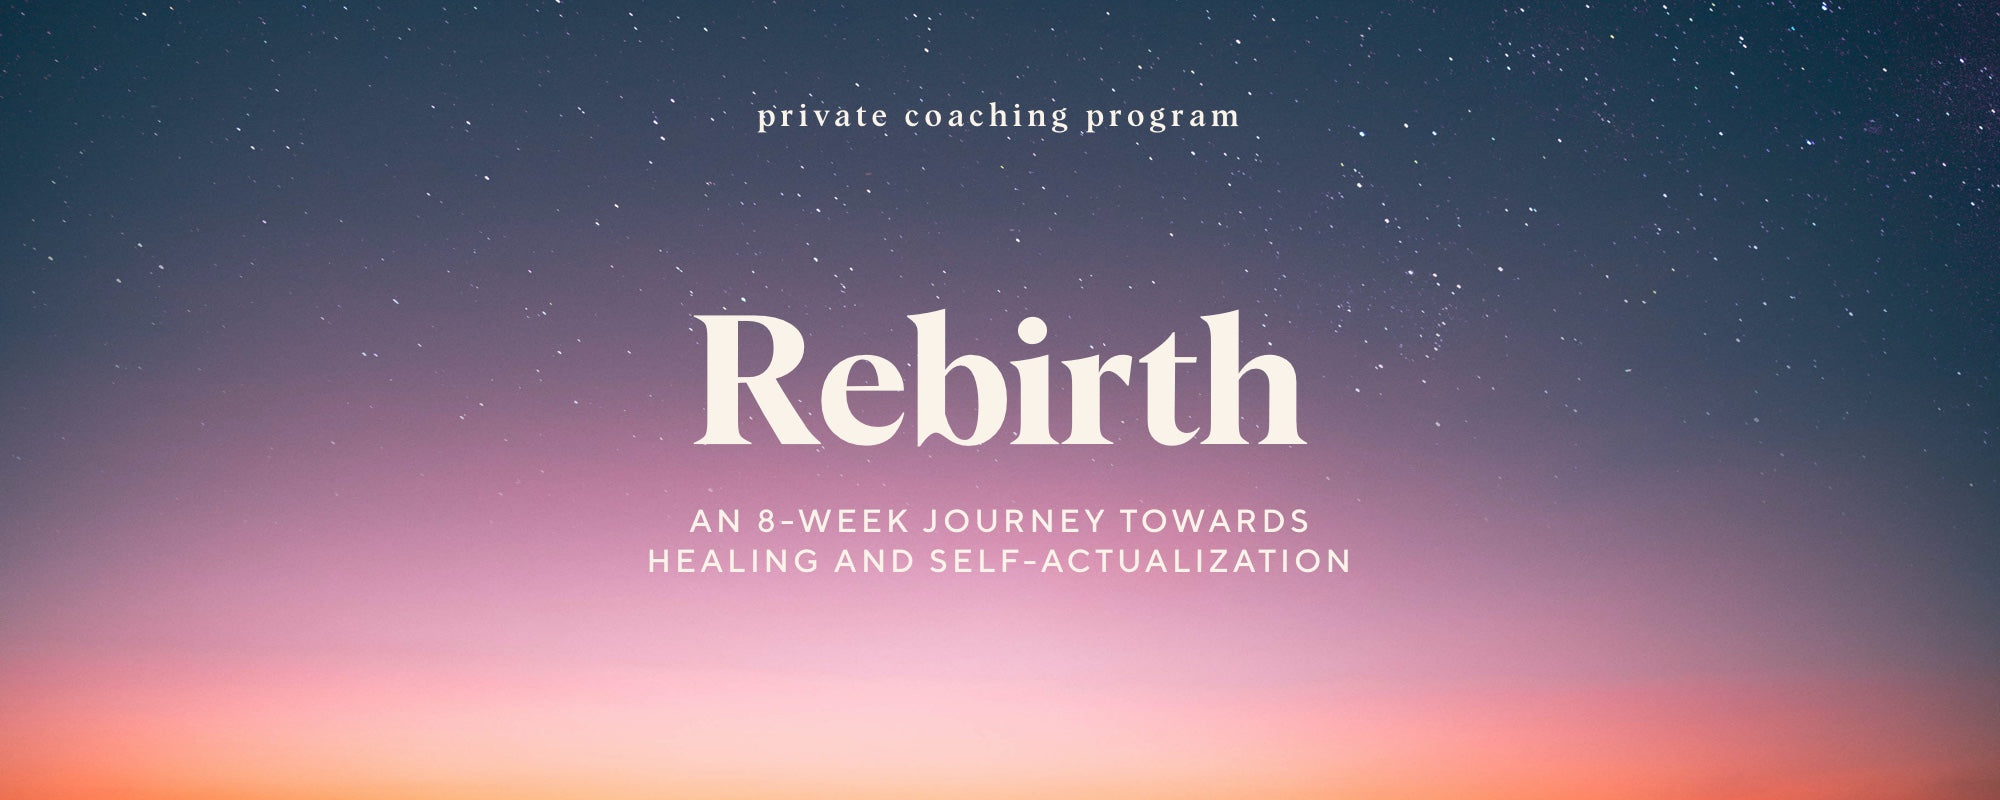 Rebirth — an 8-week journey towards healing and self-actualization